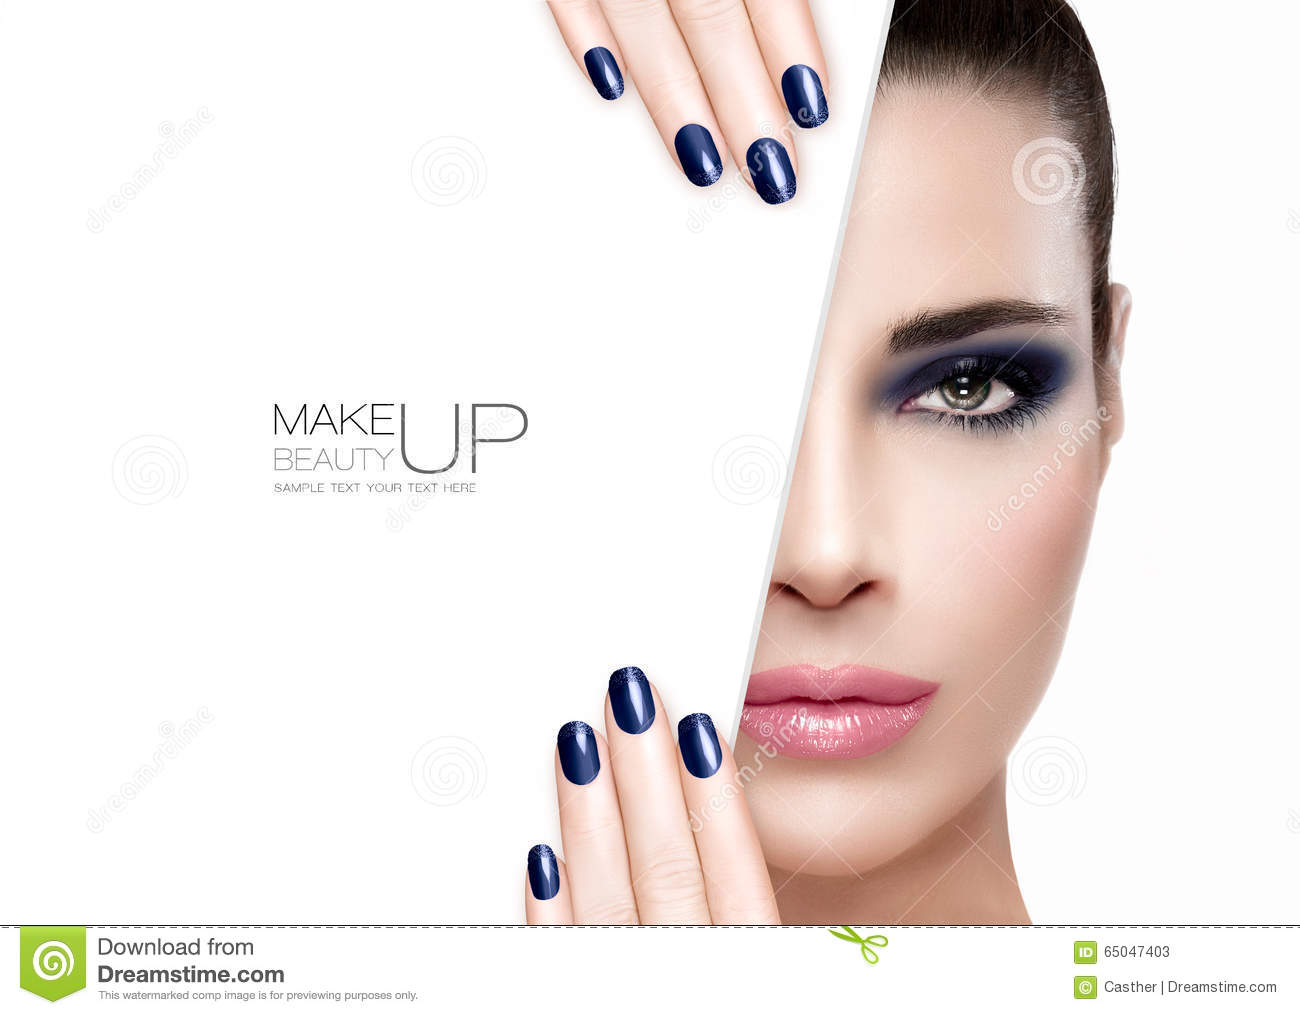 Beauty And Makeup Concept. Blue Nail Art And Make-up Stock ...